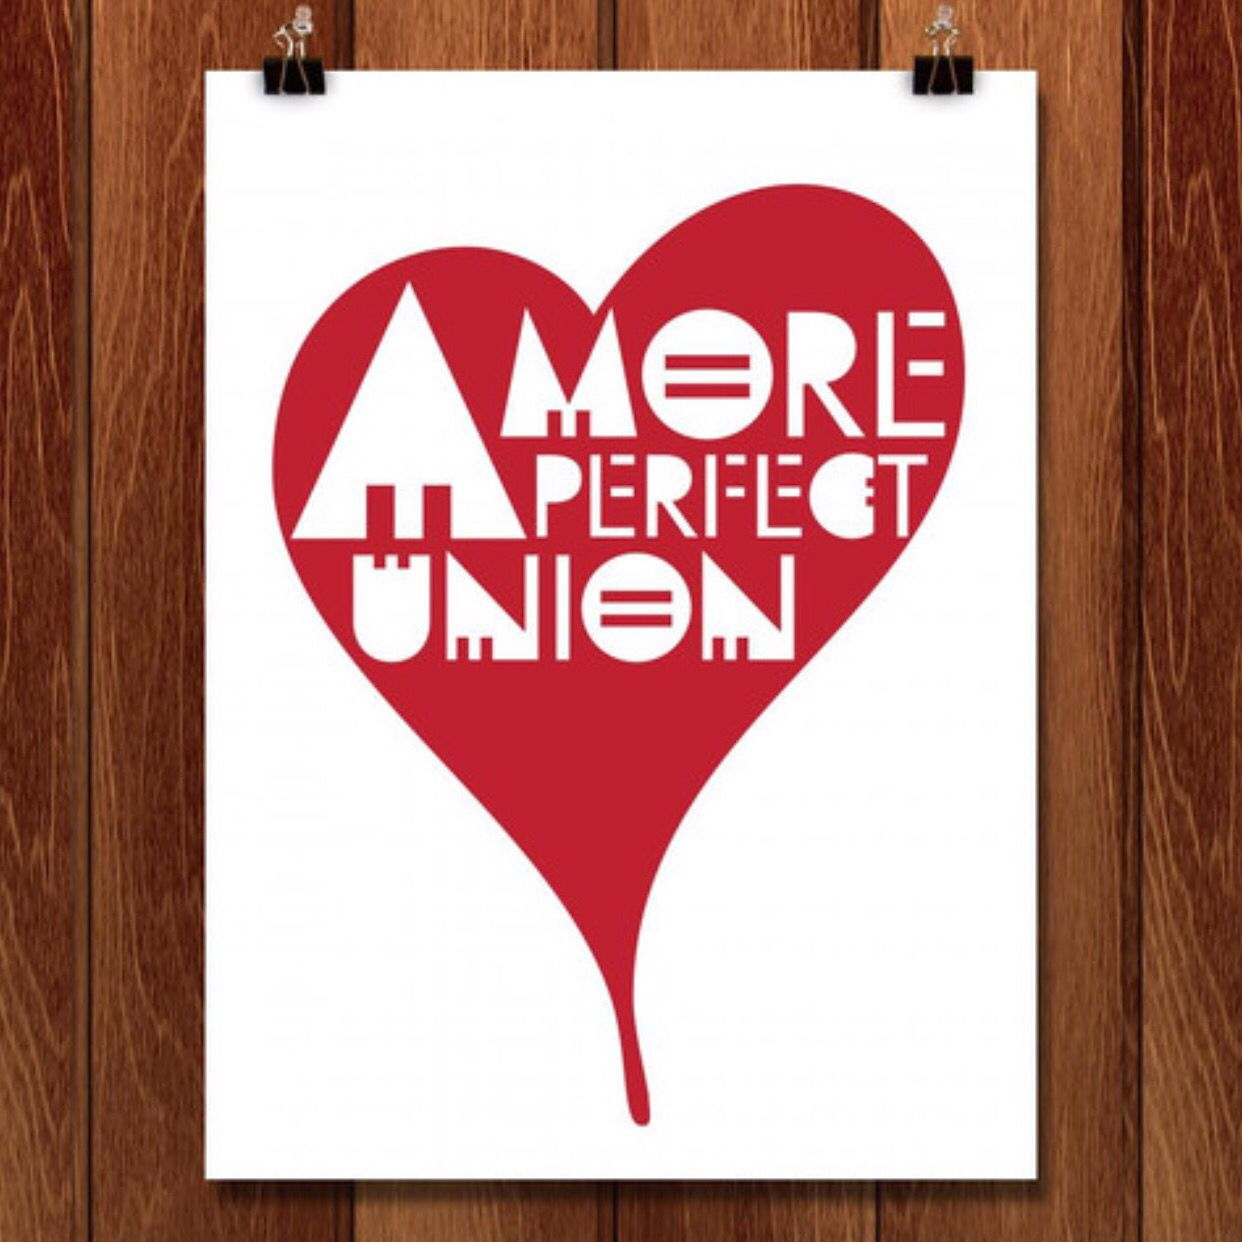 A More Perfect Union 3 By Mark Forton With Images